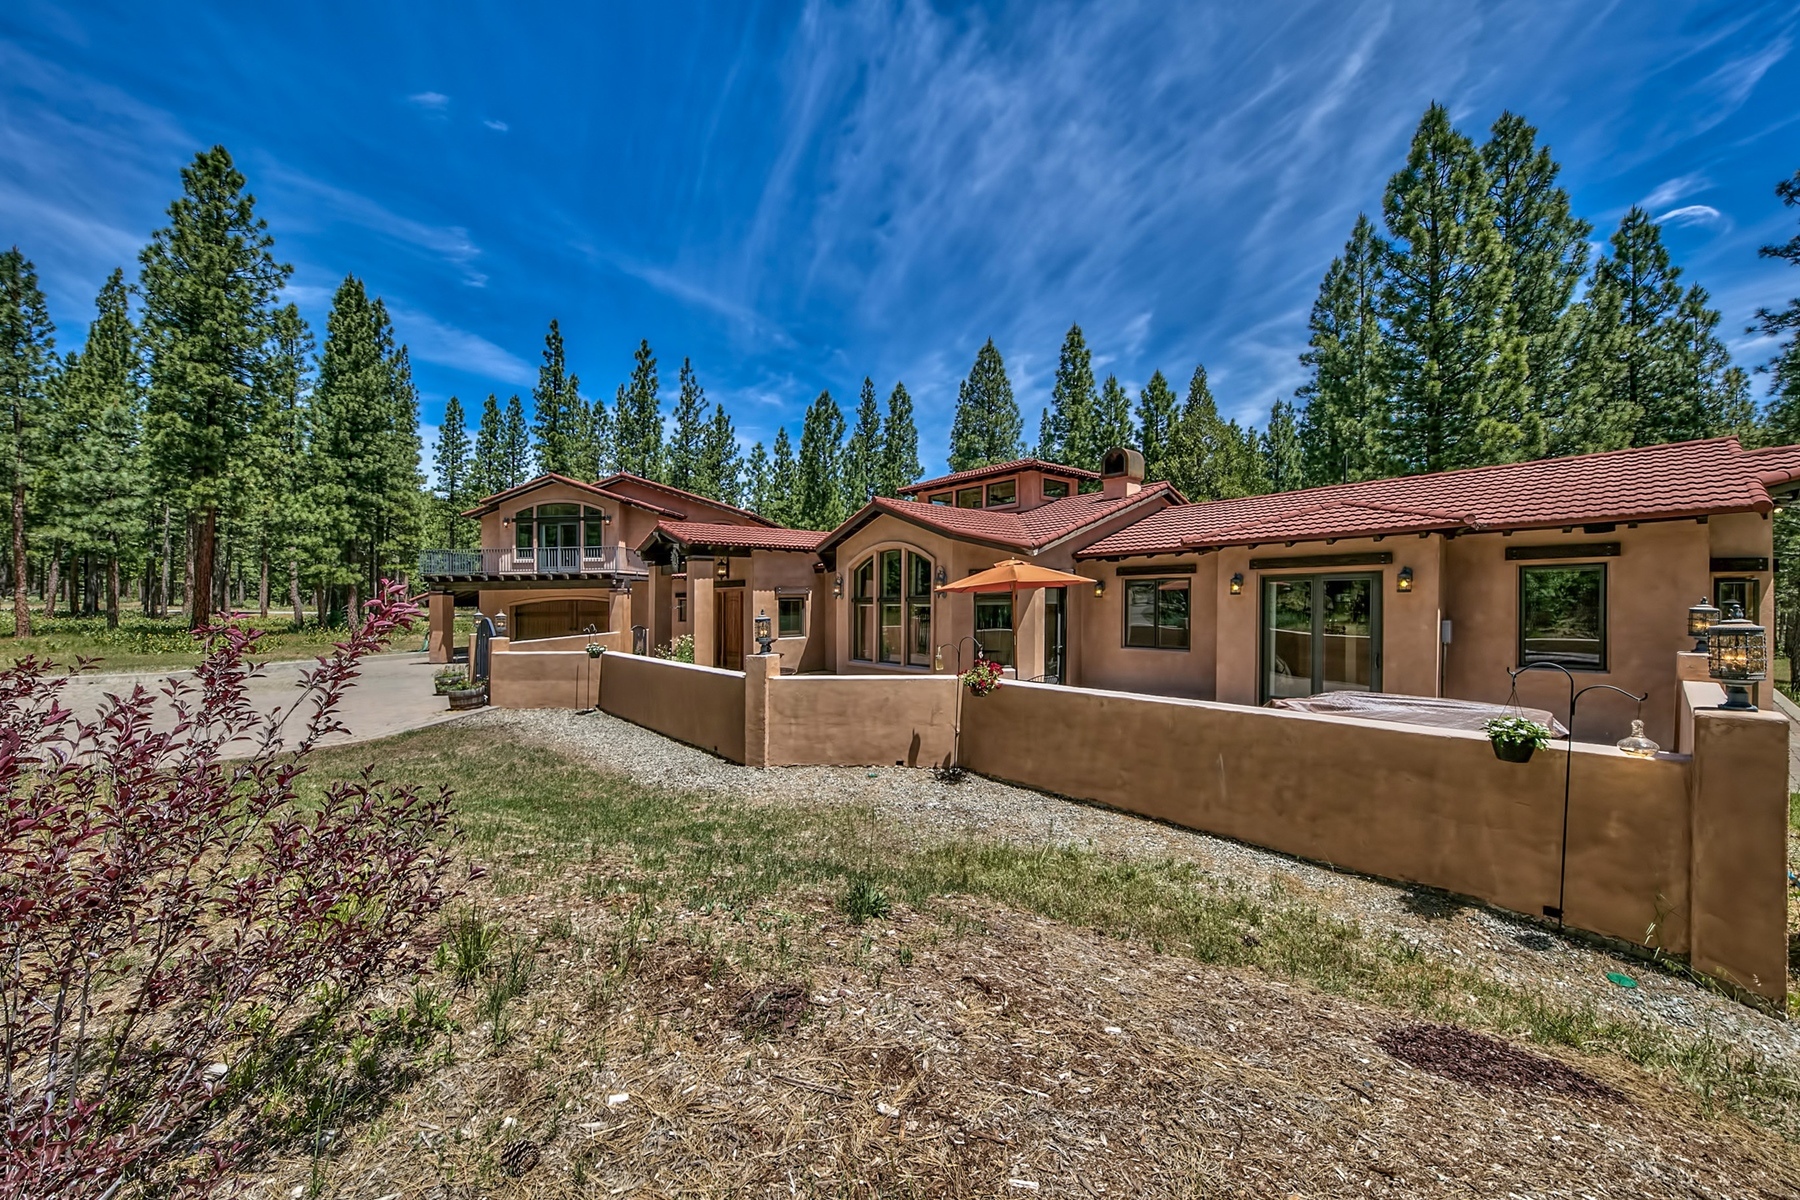 Additional photo for property listing at 105 Aspen Court, Calpine Ca 96124 105 Aspen Court Calpine, 加利福尼亚州 96124 美国